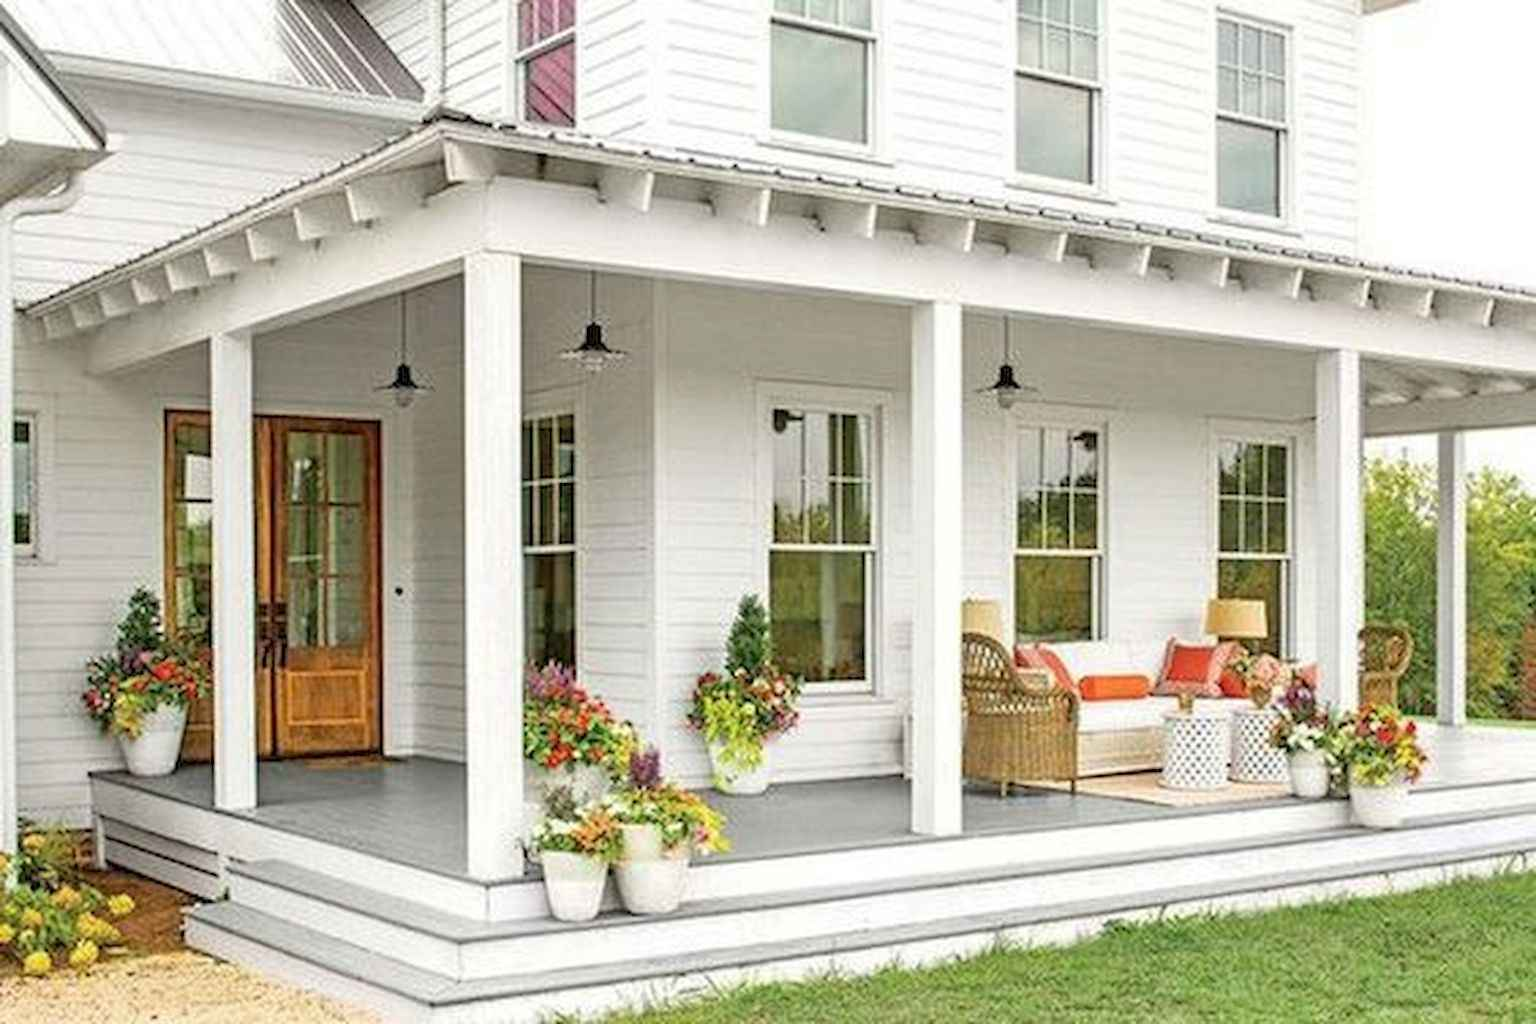 30 Rustic Farmhouse Front Porch Decorating Ideas - MOODecor.co